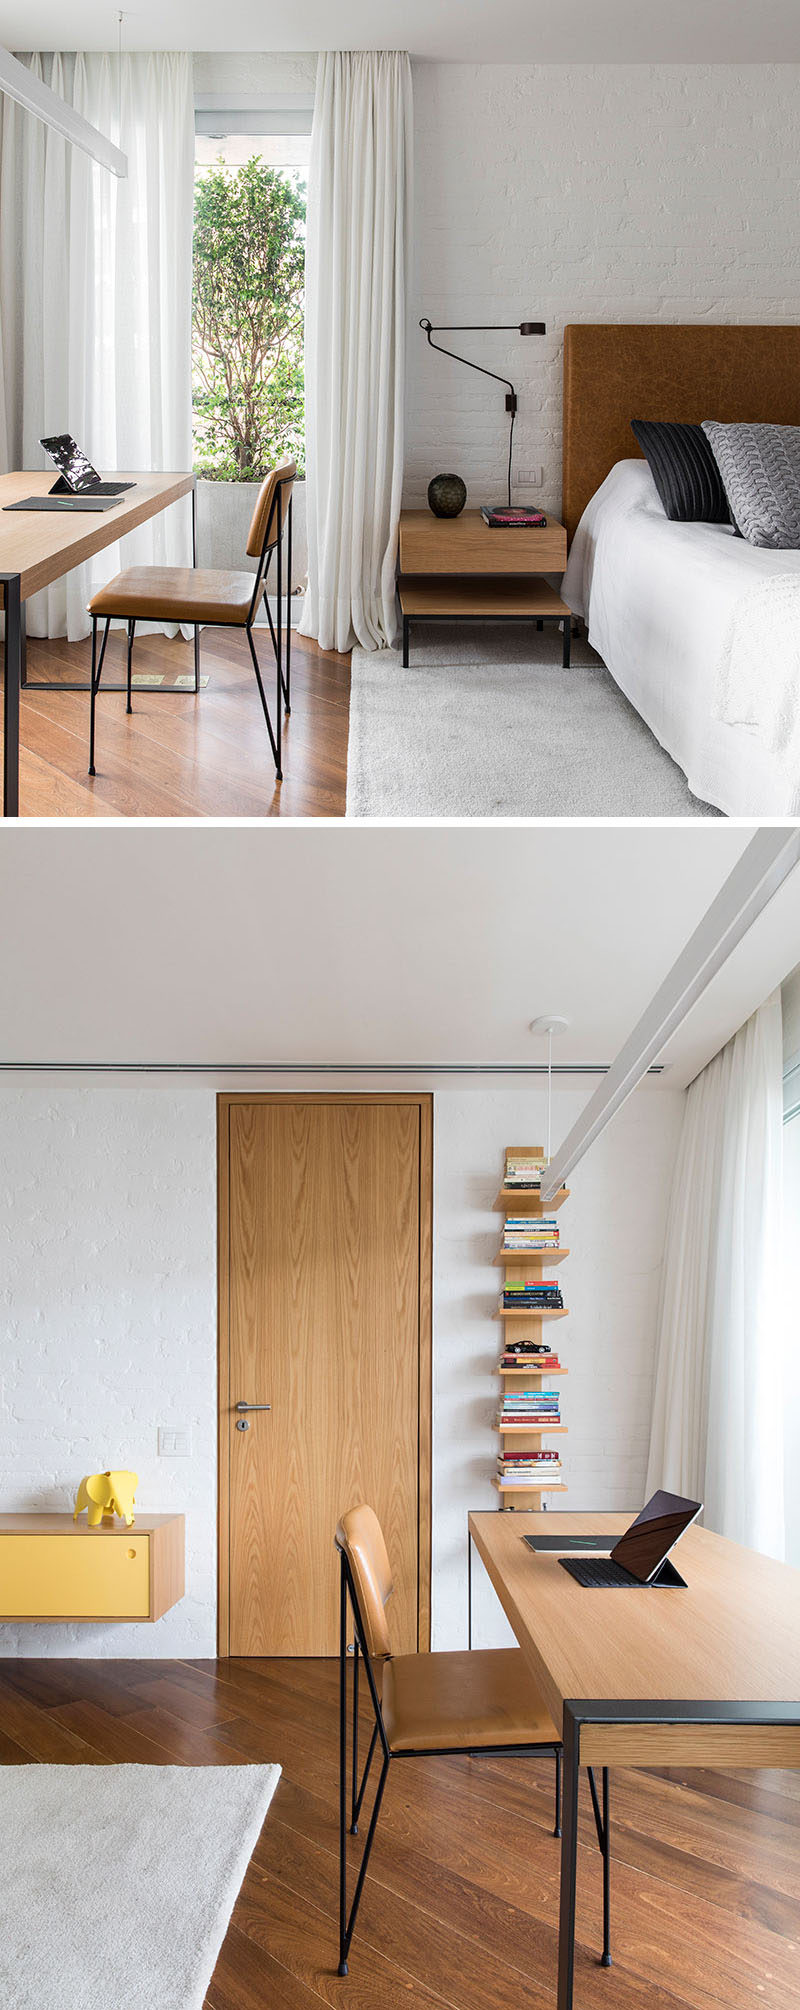 In this bedroom, there's a white painted brick wall, and a study area in front of the windows. An ensuite bathroom is located behind the wood door. #BedroomDesign #ModernBedroom #StudyDesk